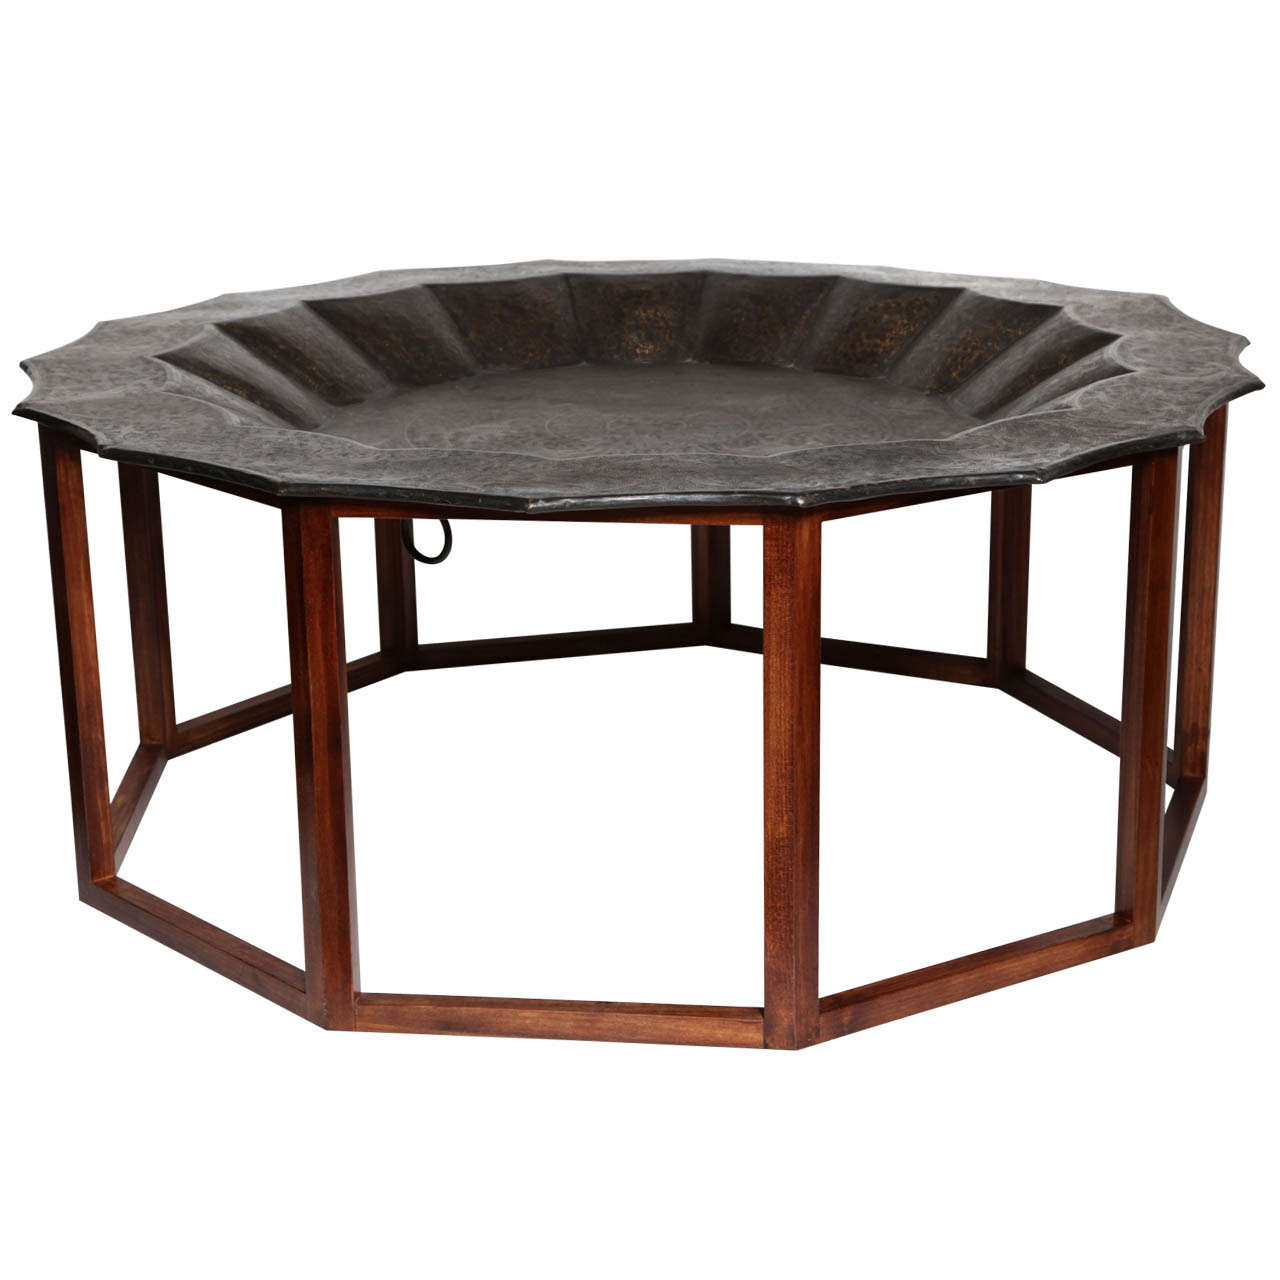 A Brass Tray Top Coffee Table At 1stdibs